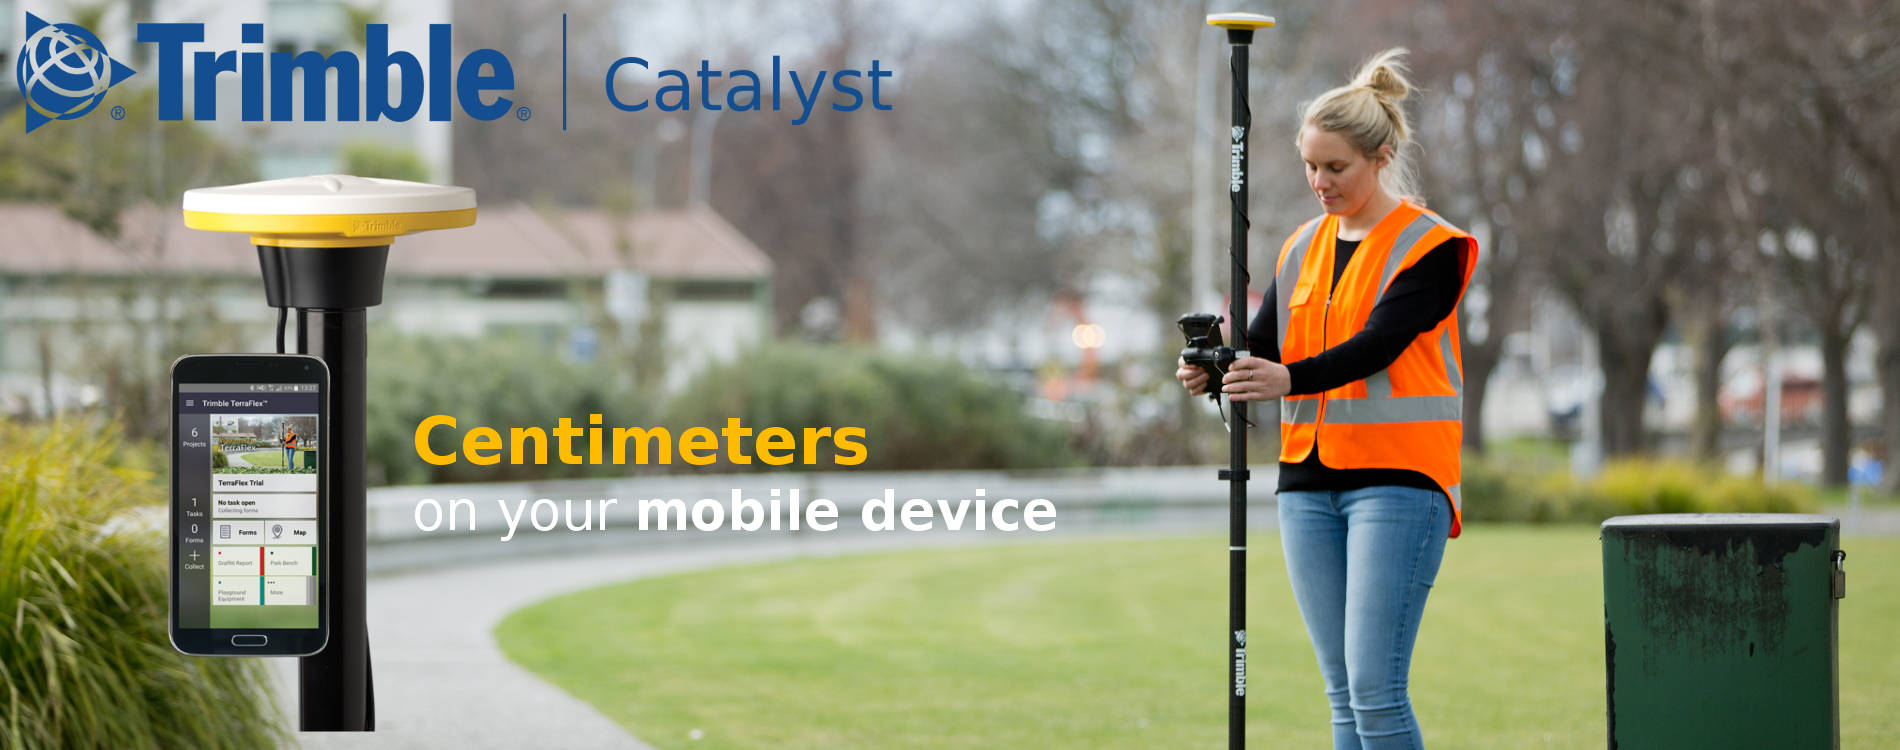 Trimble Catalyst